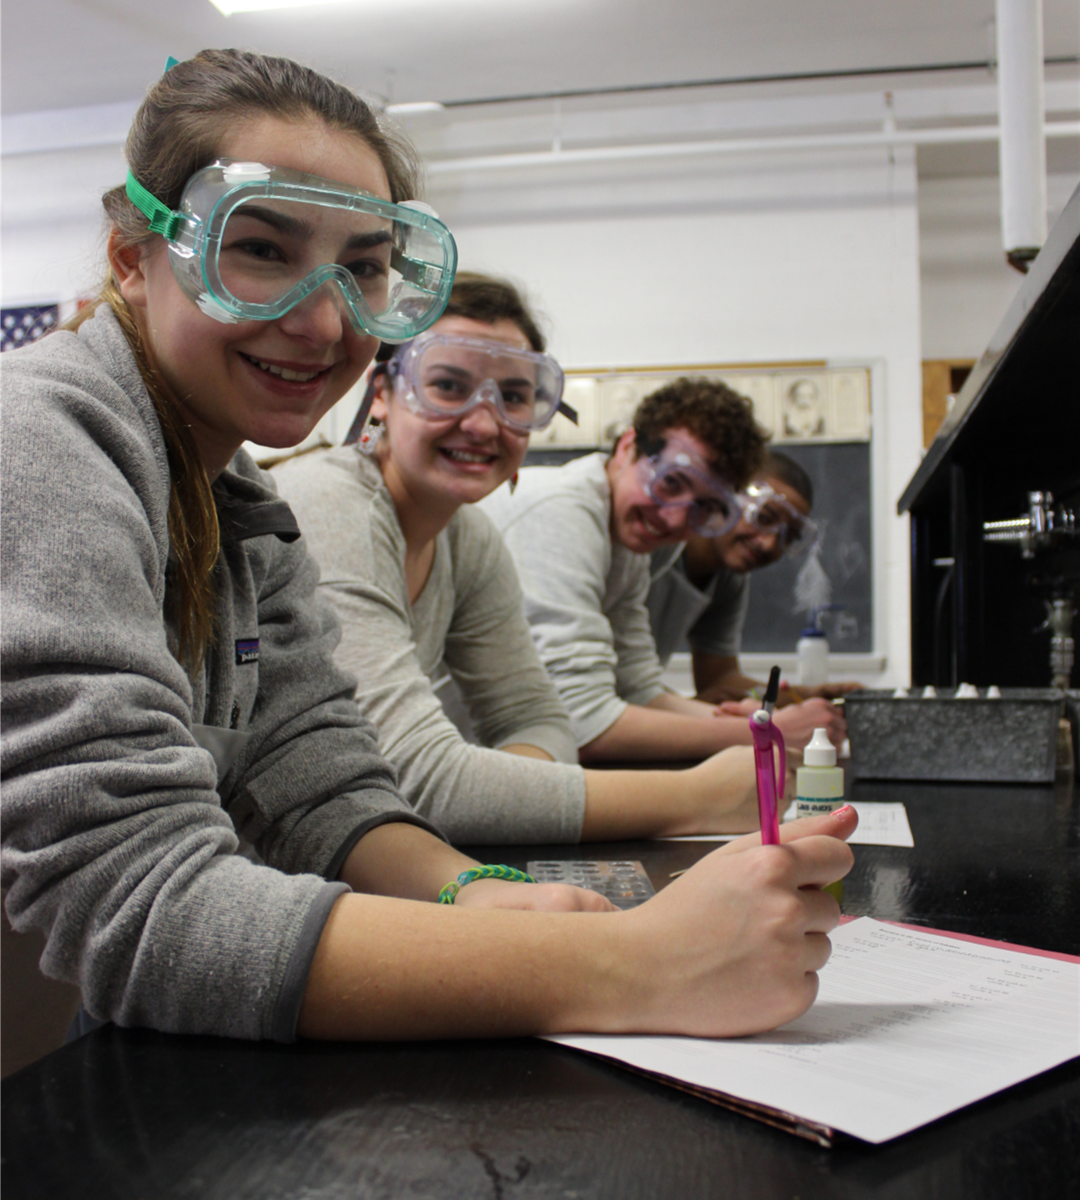 chem lab students in goggles